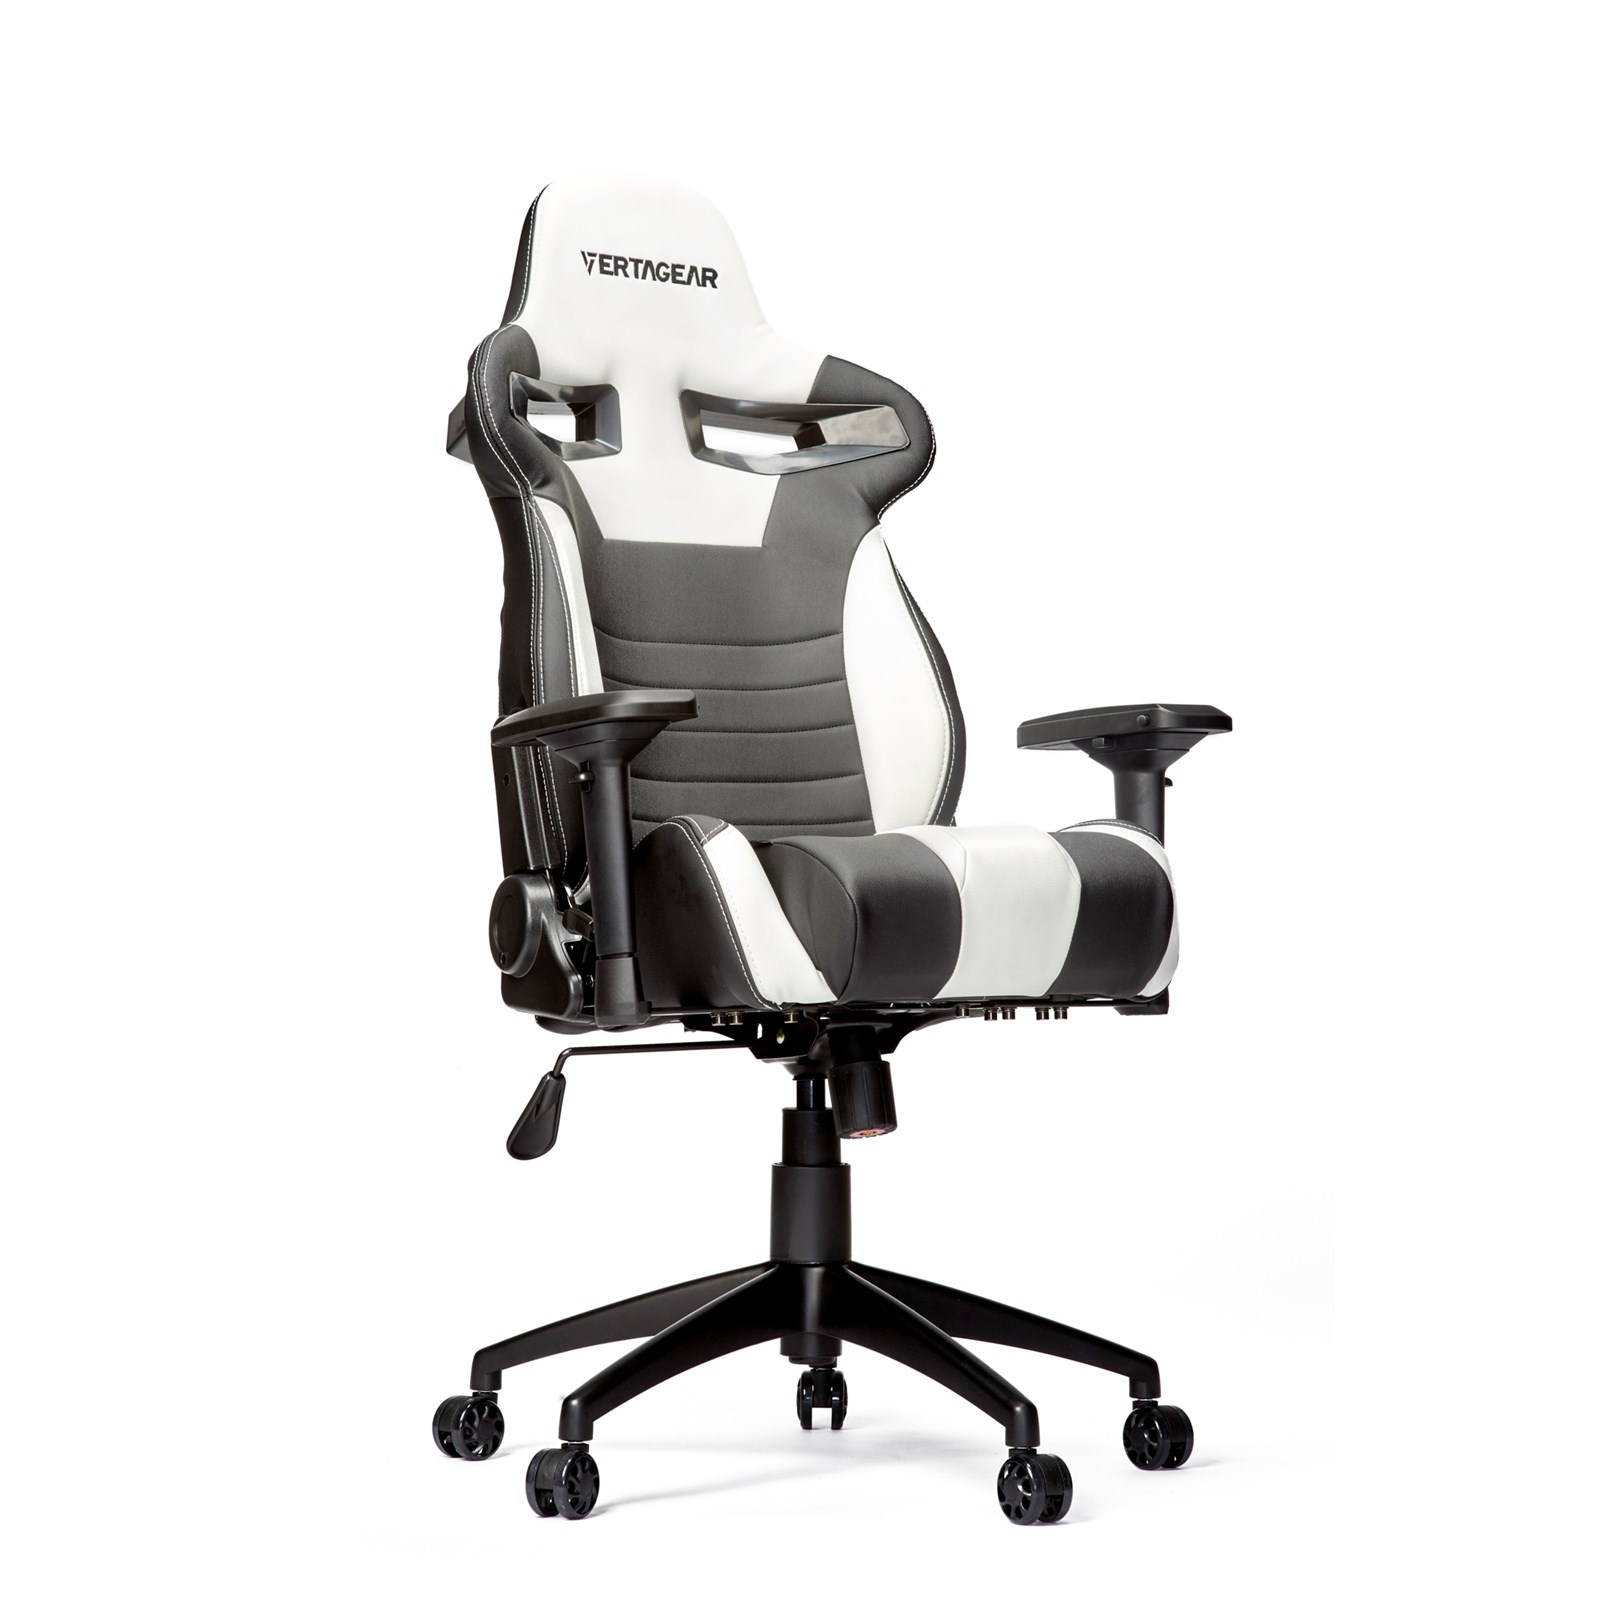 Groovy Vertagear Racing Series S Line Sl4000 Gaming Chair White Andrewgaddart Wooden Chair Designs For Living Room Andrewgaddartcom